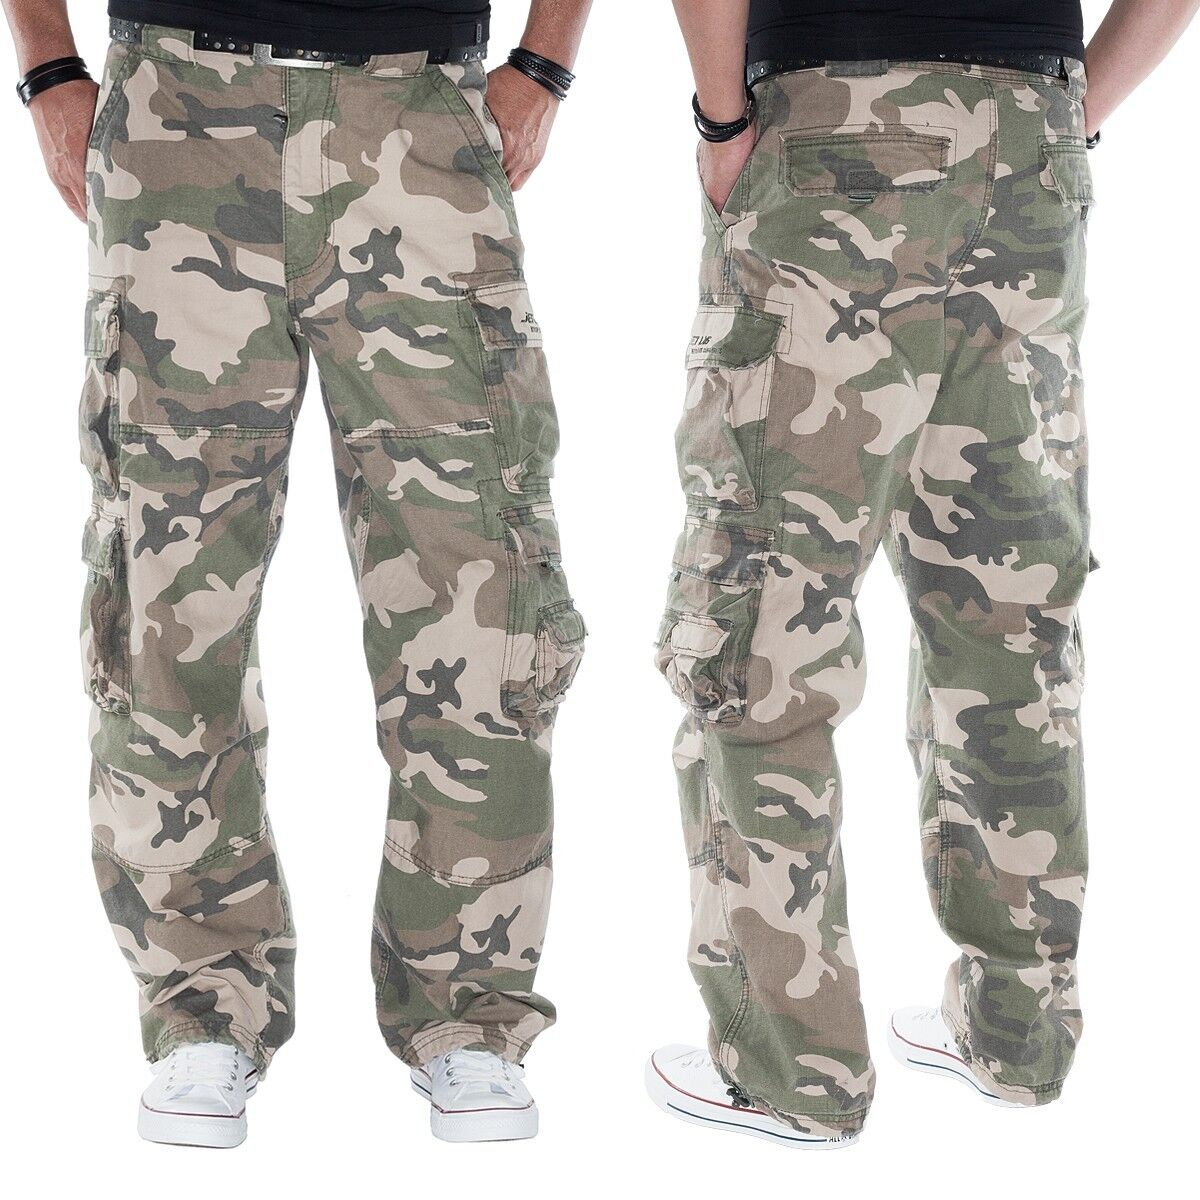 JET LAG weite Cargohose Modell 007 in camouflage - fällt lang aus